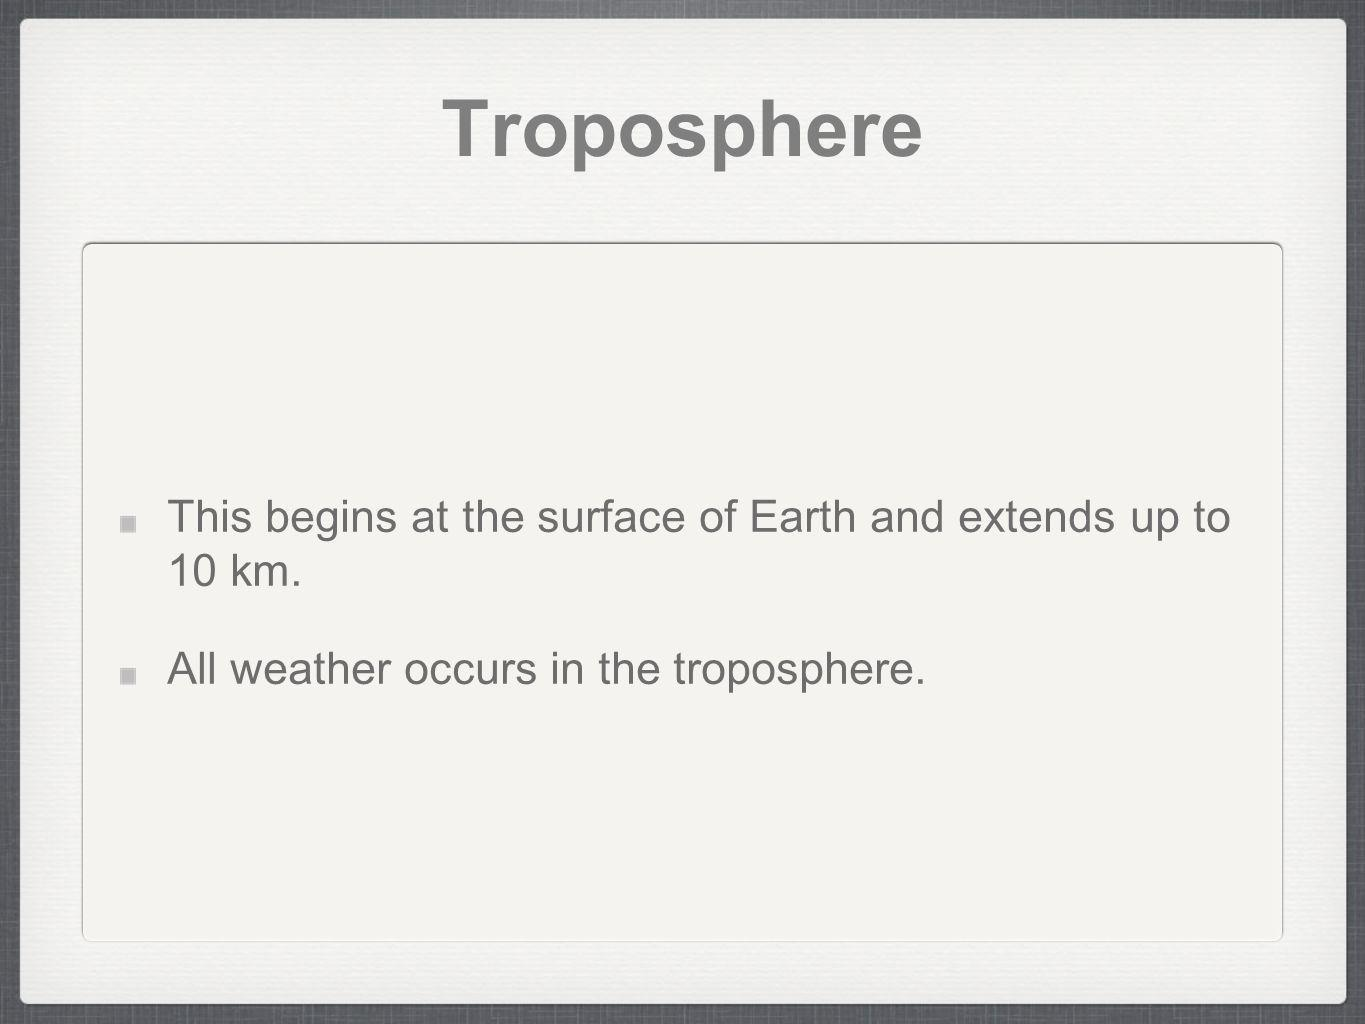 Troposphere This begins at the surface of Earth and extends up to 10 km.